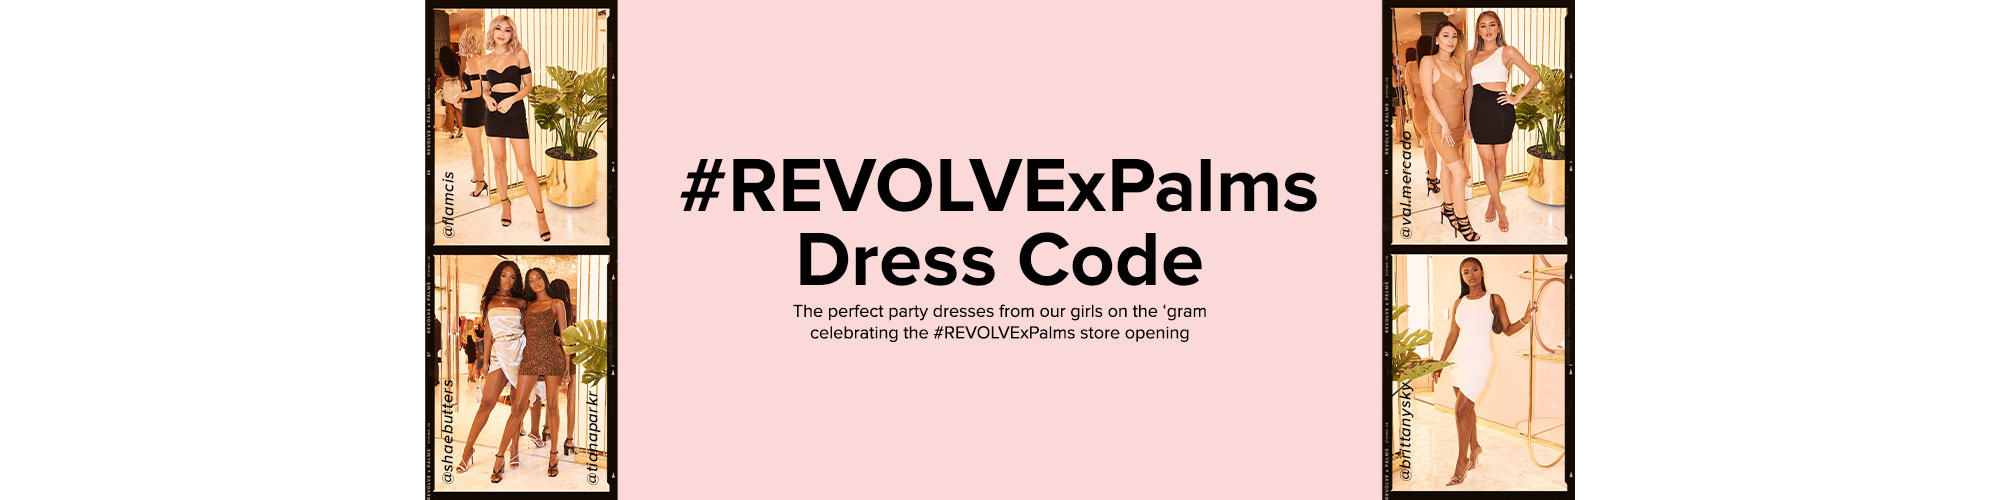 #REVOLVExPalms Dress Code: The perfect party dresses from our girls on the \u2018gram celebrating the #REVOLVExPalms store opening. Shop The Edit.